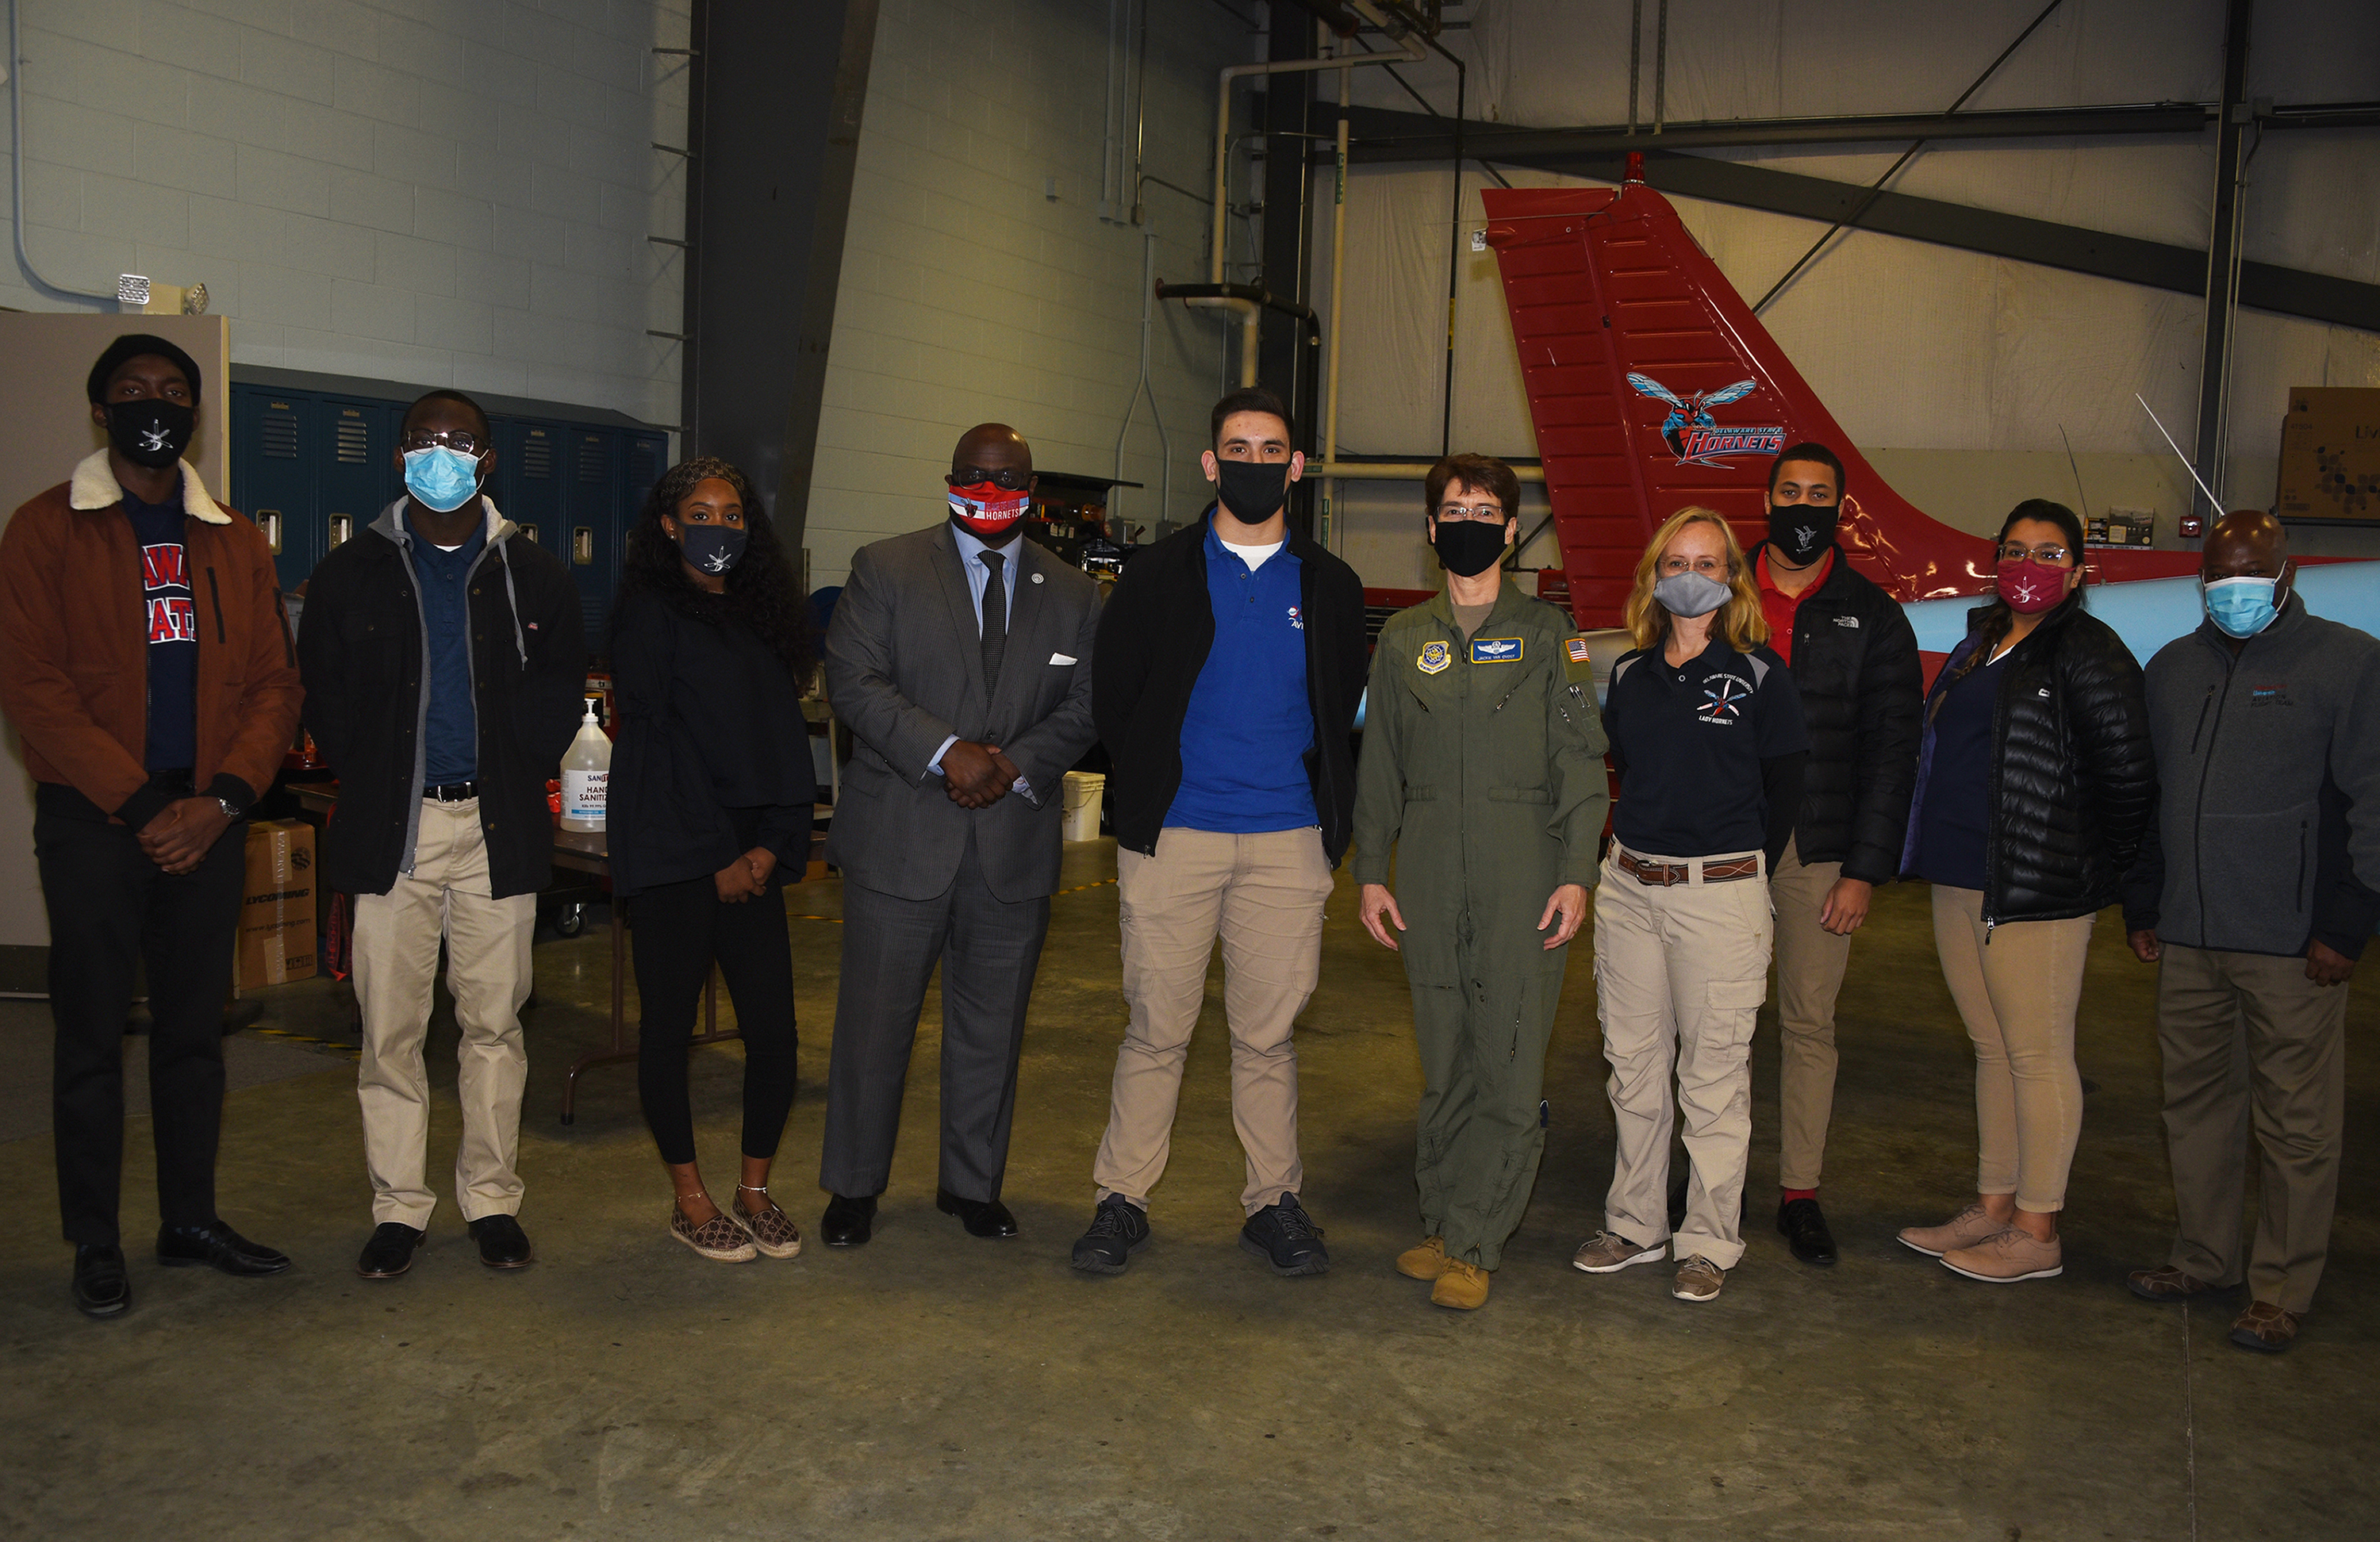 (L-r) Ian Teray Tcheliebou, Darrell Machison, Jalyn Clark, Dr. Tony Allen, Matthew Cunningham, Gen. Jacqueline D. Van Ovost, Cindy Blair, Mekhi Howard, Eliana Rothwell, and Aviation Program Director Lt. Col. (ret.) Michael Hales, pose for a photo after the four-star general gave an address at the Delaware Airpark